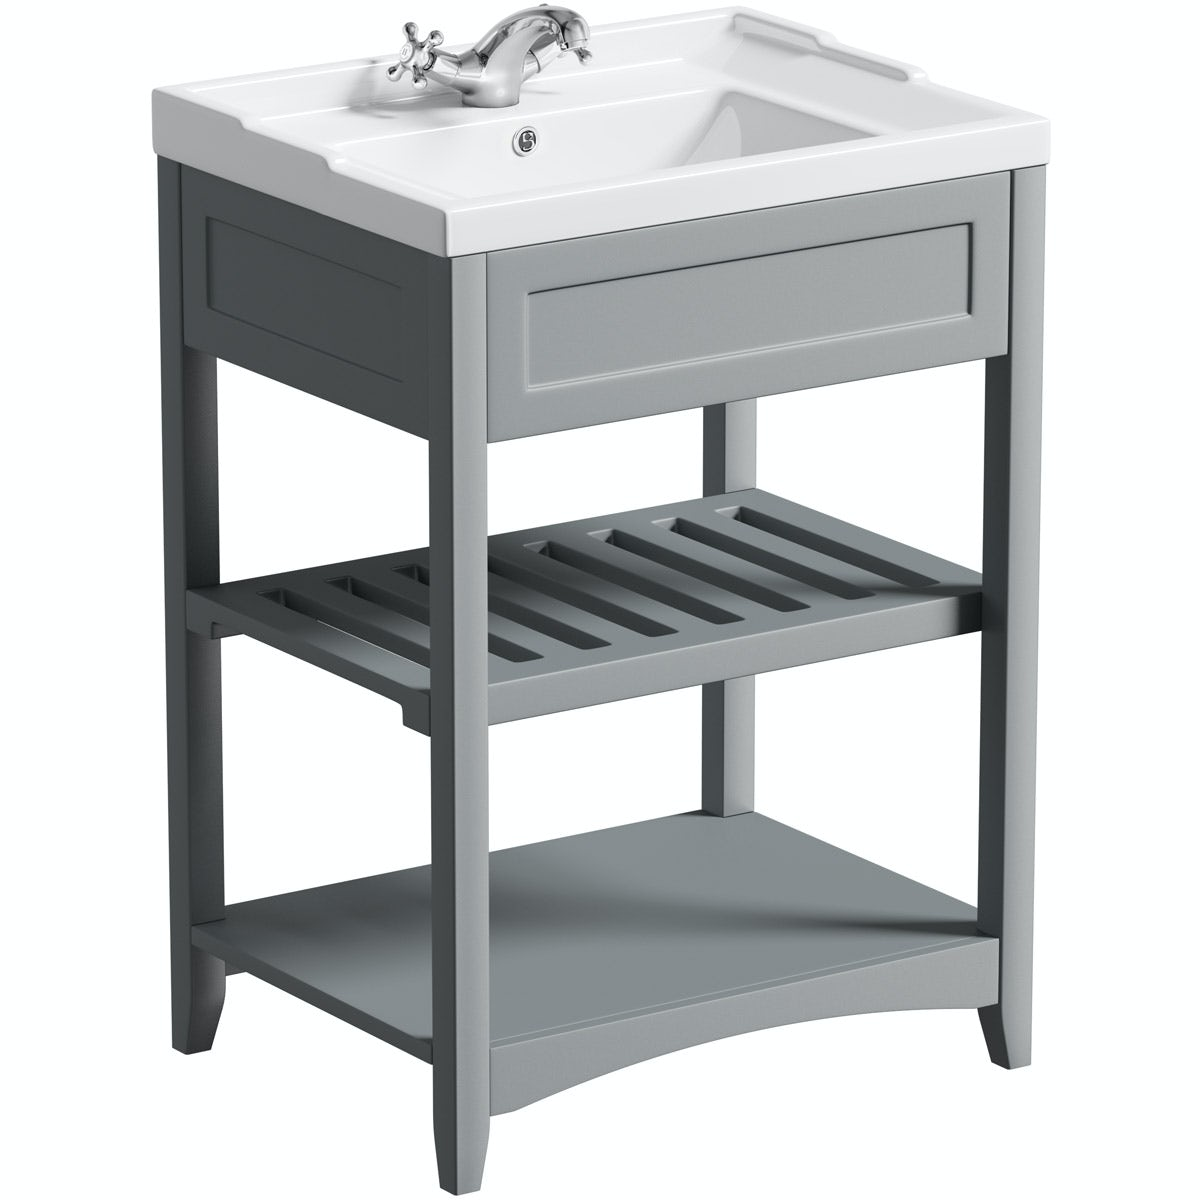 No imageThe Bath Co. Camberley satin grey washstand with traditional basin 600mm